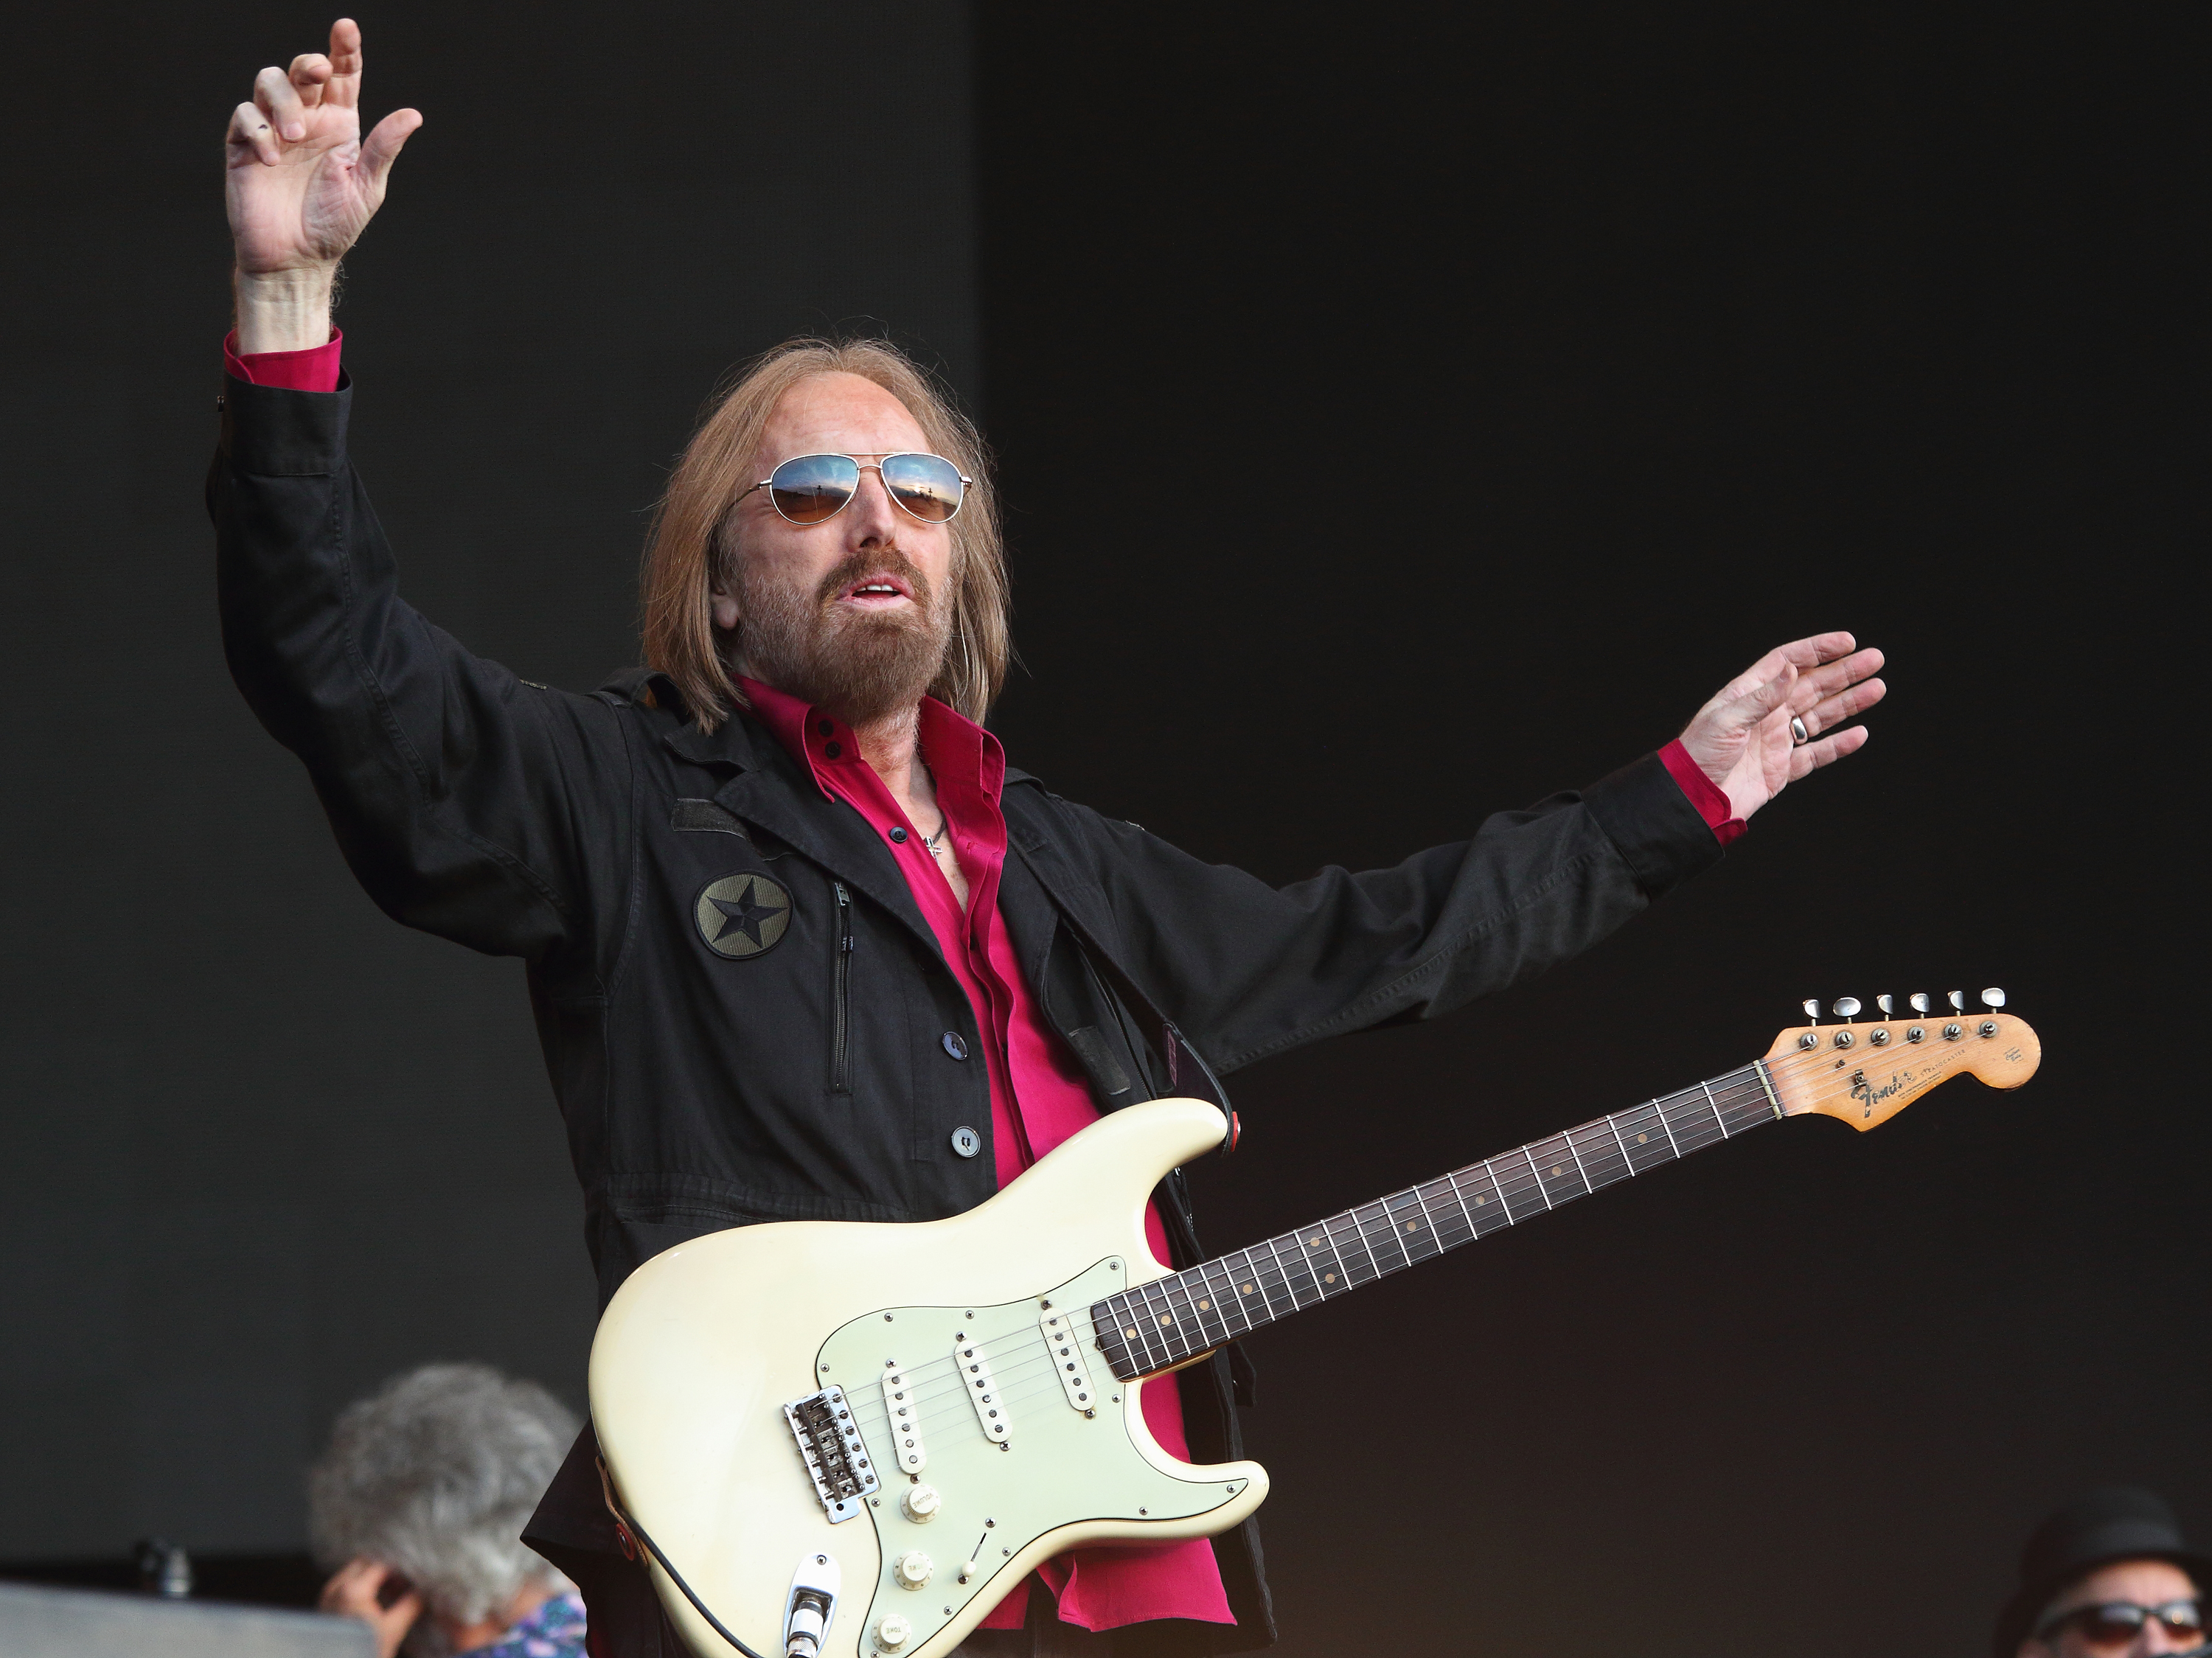 Tom Petty and the Heartbreakers perform at British Summertime, Hyde Park, London  Featuring: Tom Petty Where: London, United Kingdom When: 09 Jul 2017 Credit: WENN.com